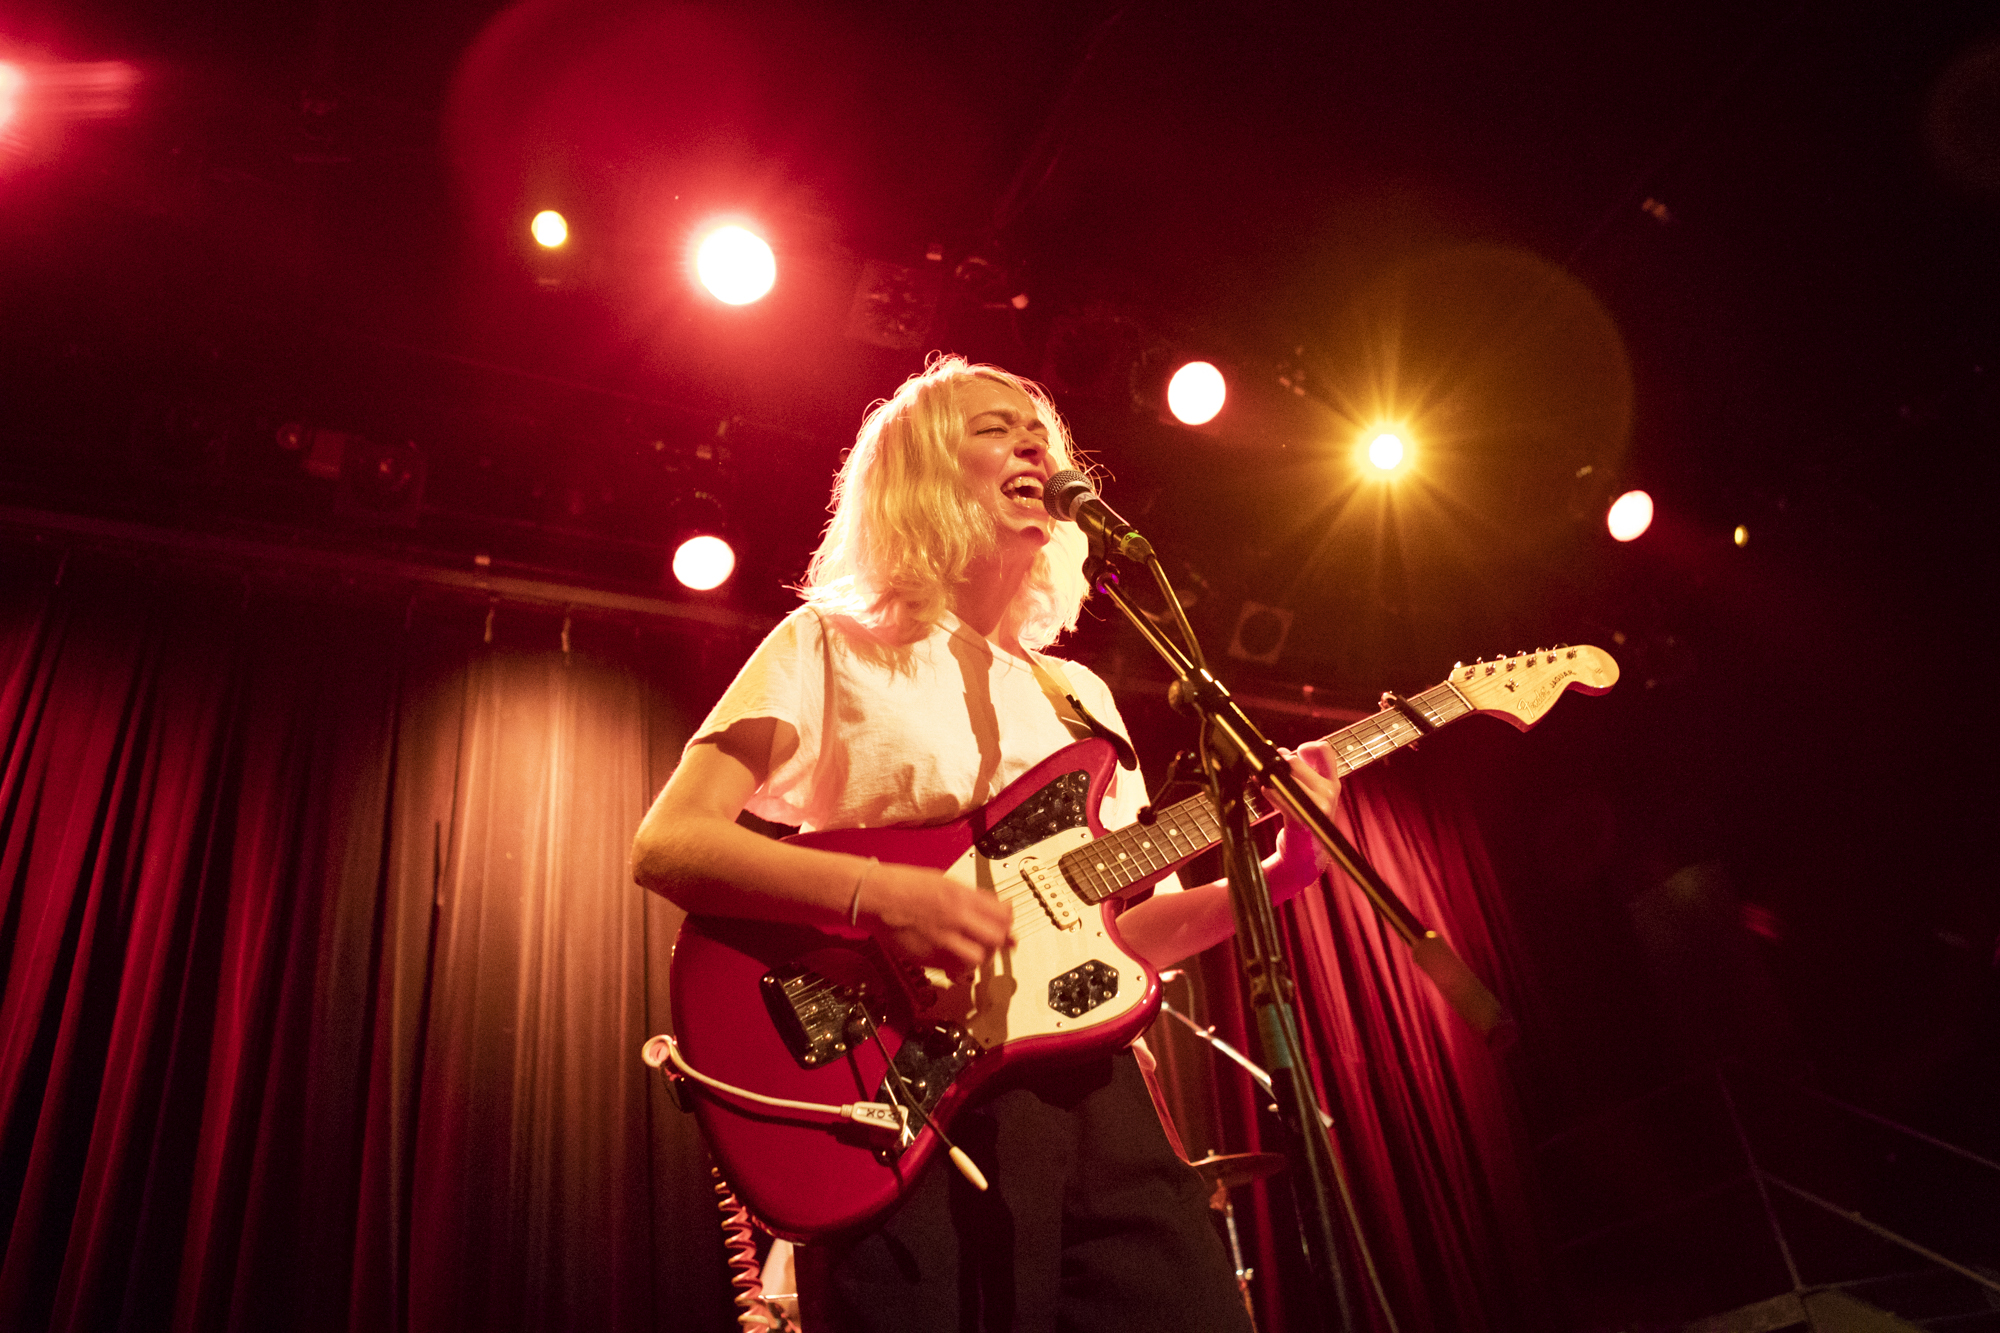 Snail Mail plays during Northside Festival at Music Hall Of Williamsburg in Williamsburg, Brooklyn, New York on June 7, 2018. (© Michael Katzif - Do not use or republish without prior consent.)